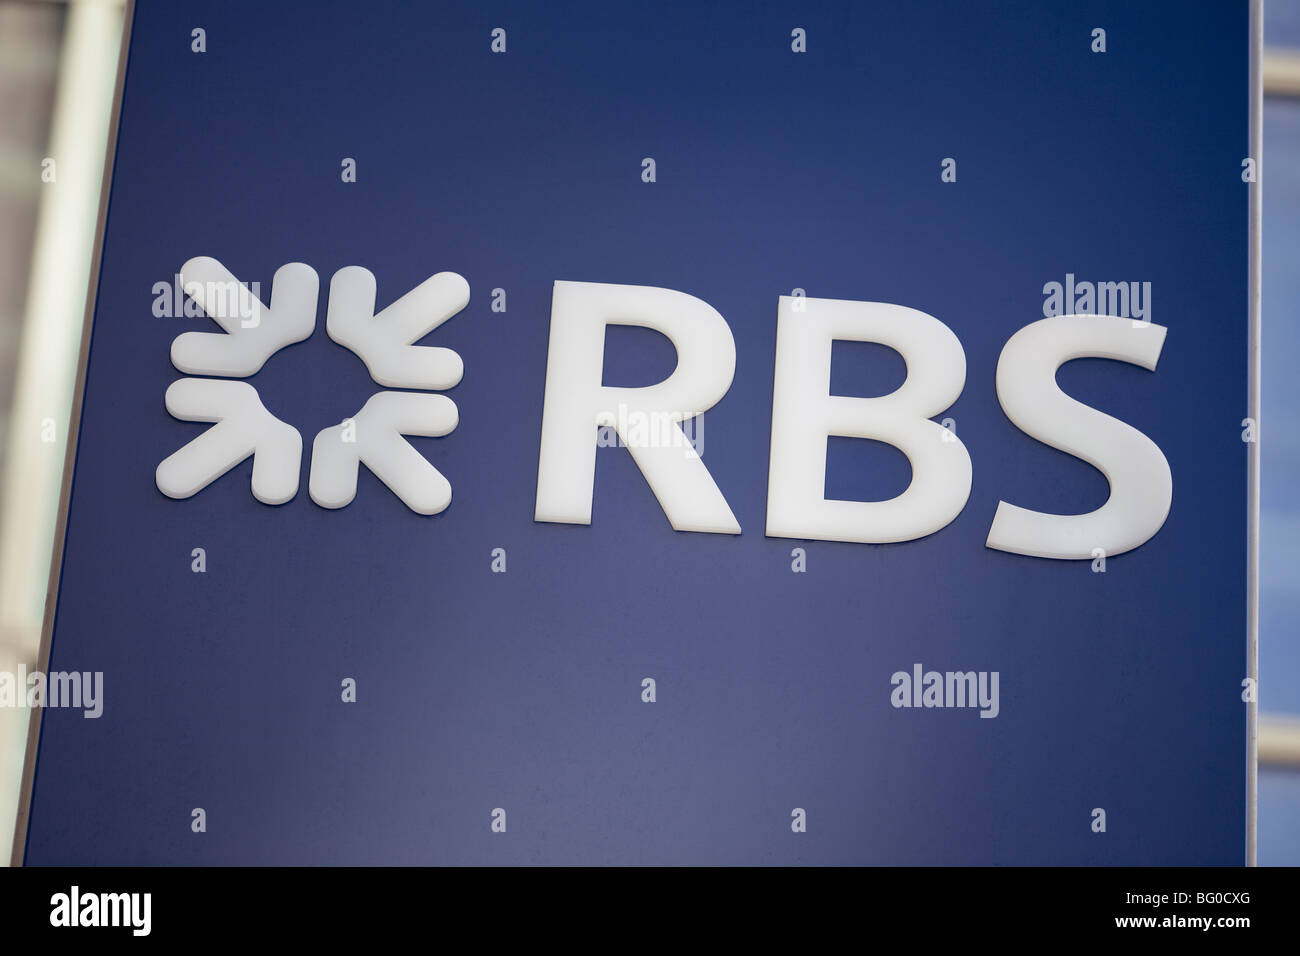 Royal bank of Scotland RBS sign in City of London, London, UK - Stock Image